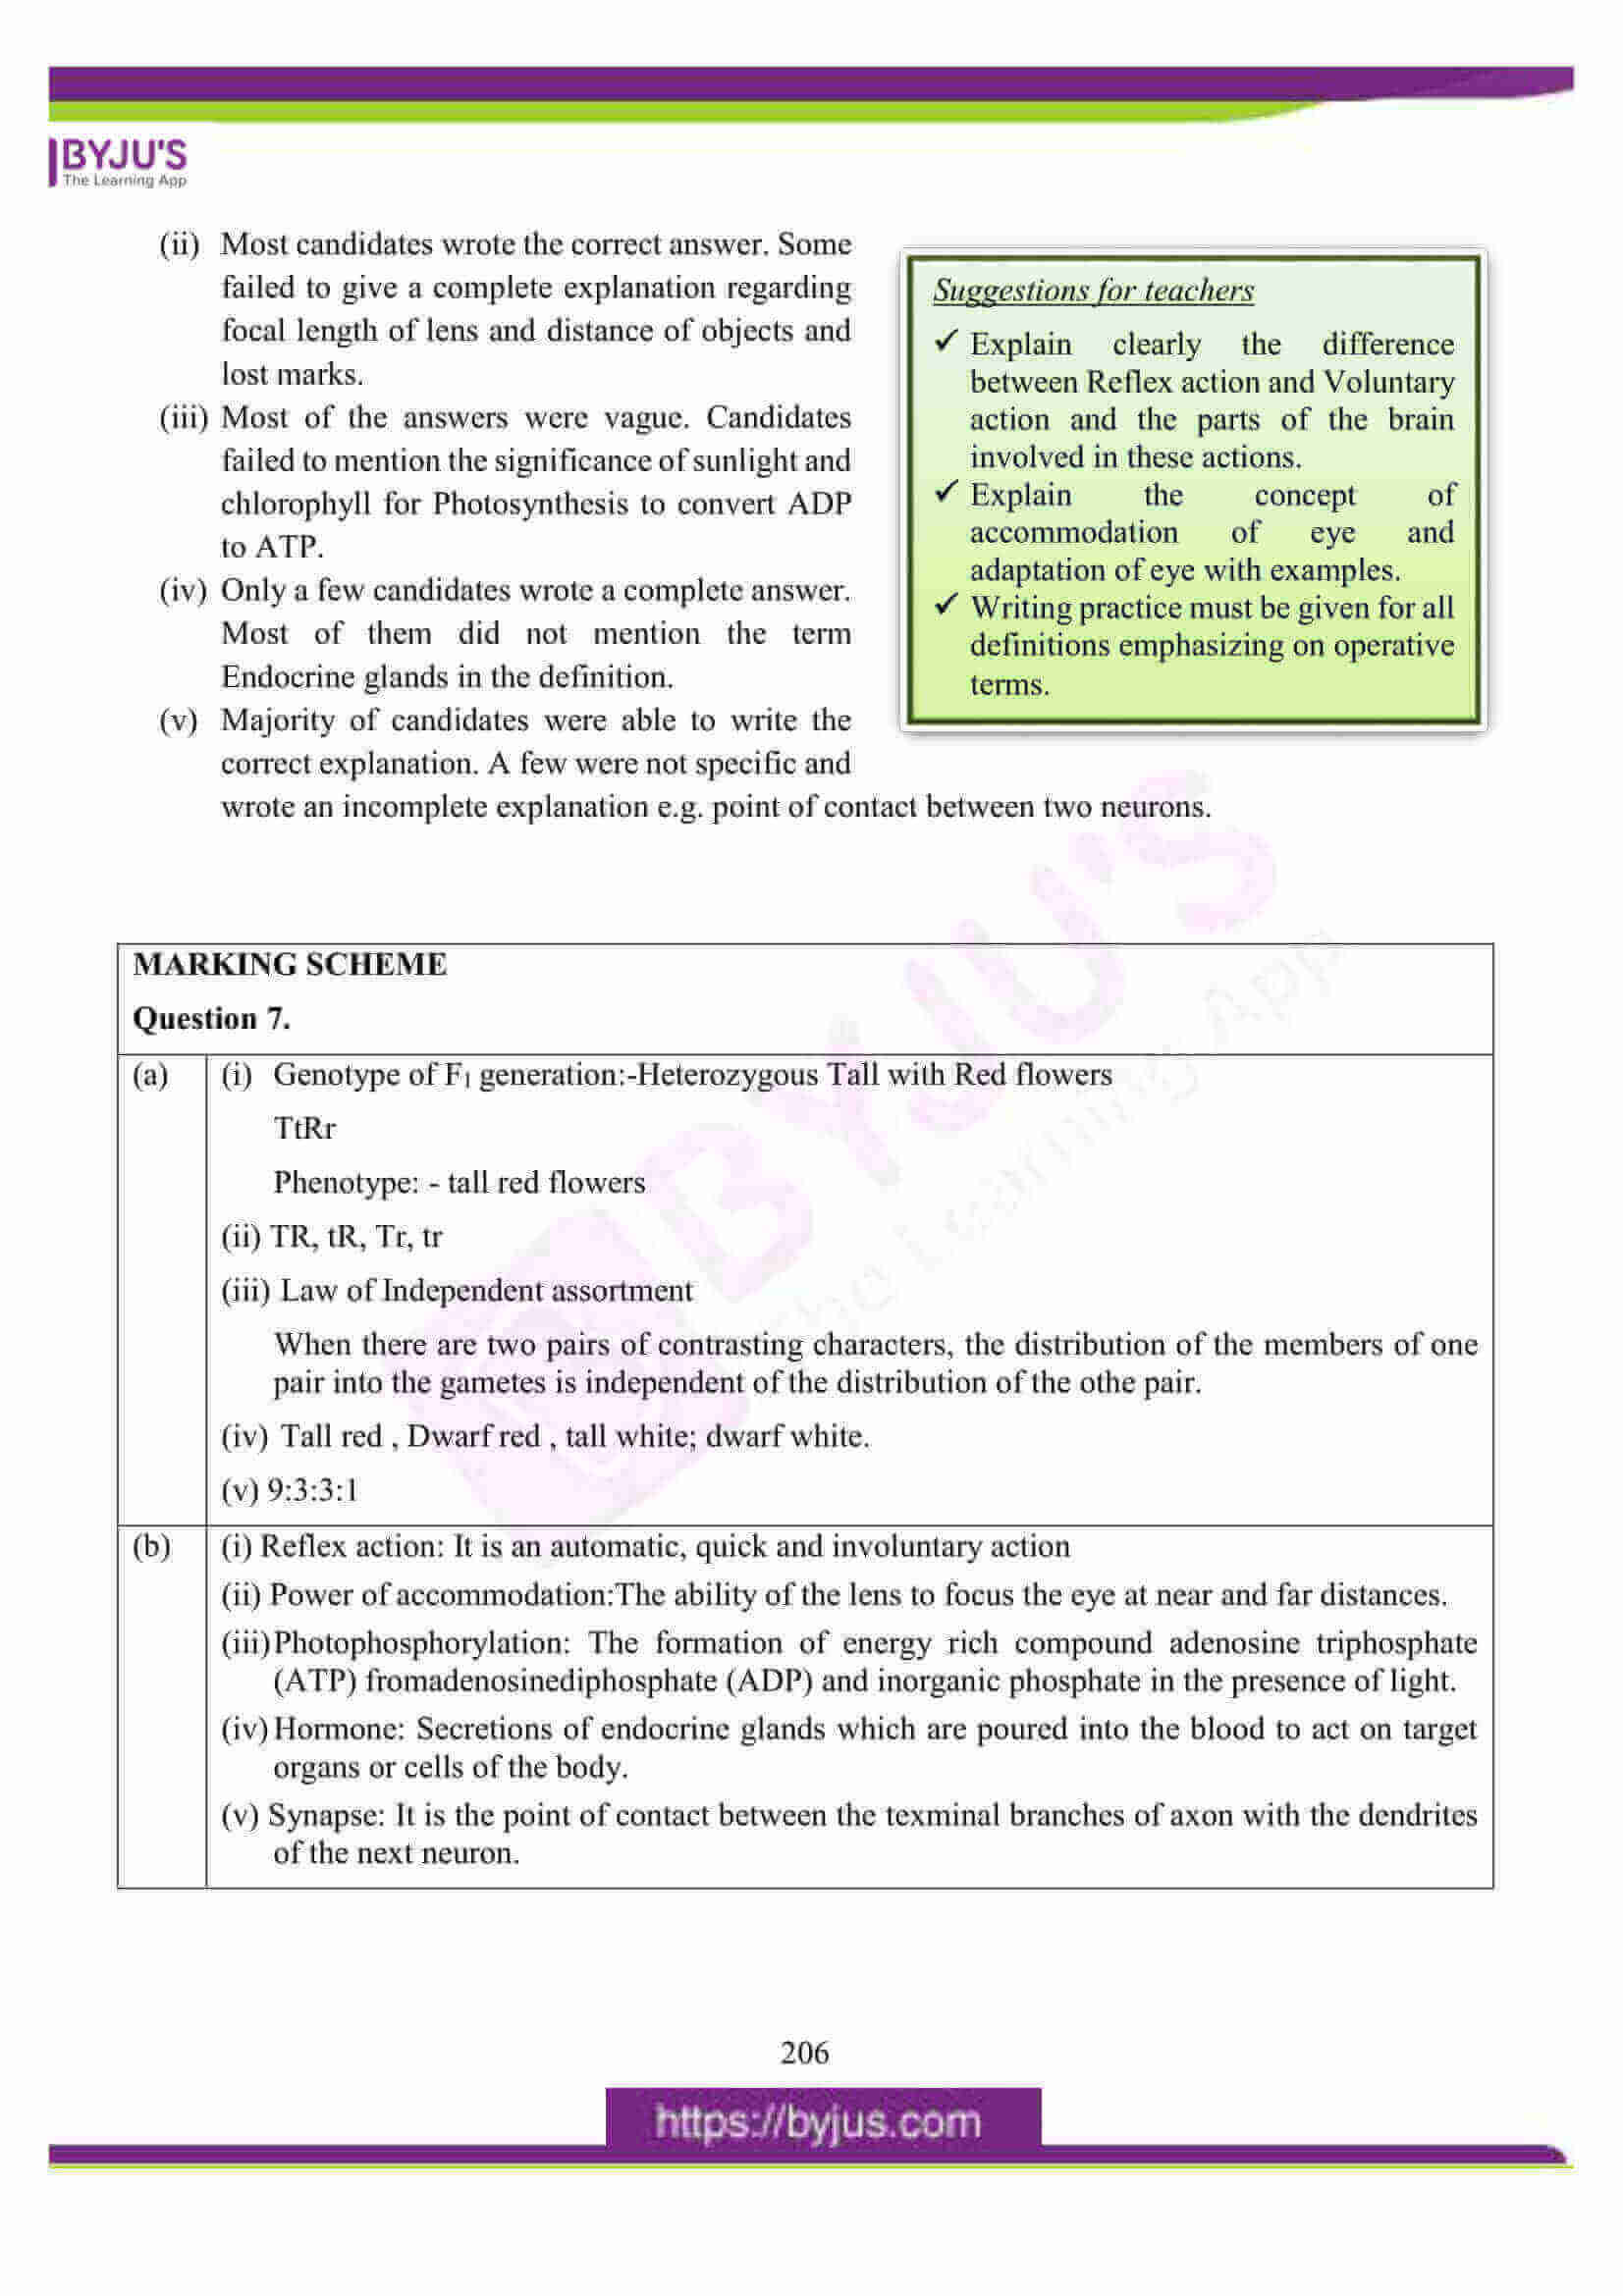 icse class 10 biology question paper solution 2016 24